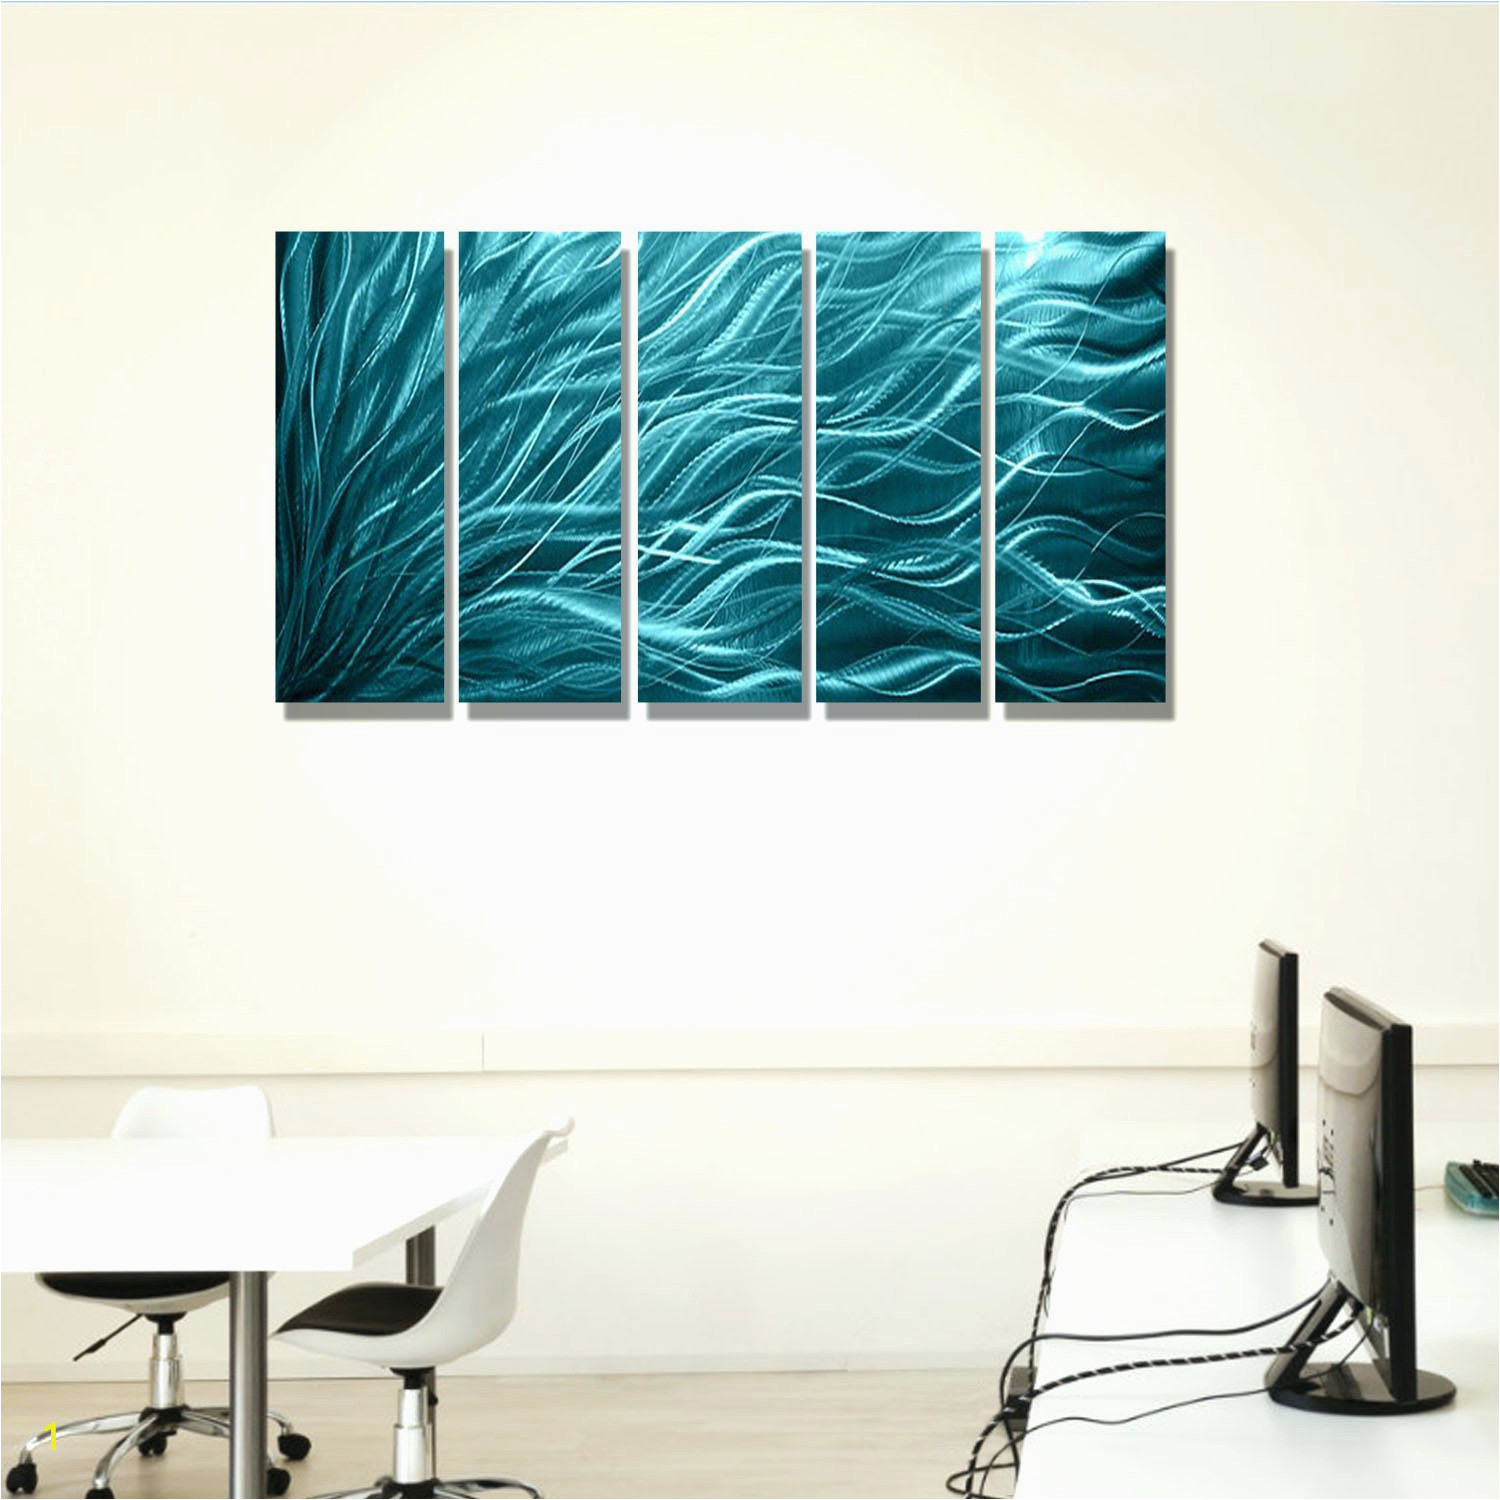 architectural wall art awesome metal wall art panels fresh 1 kirkland wall decor home design 0d of architectural wall art